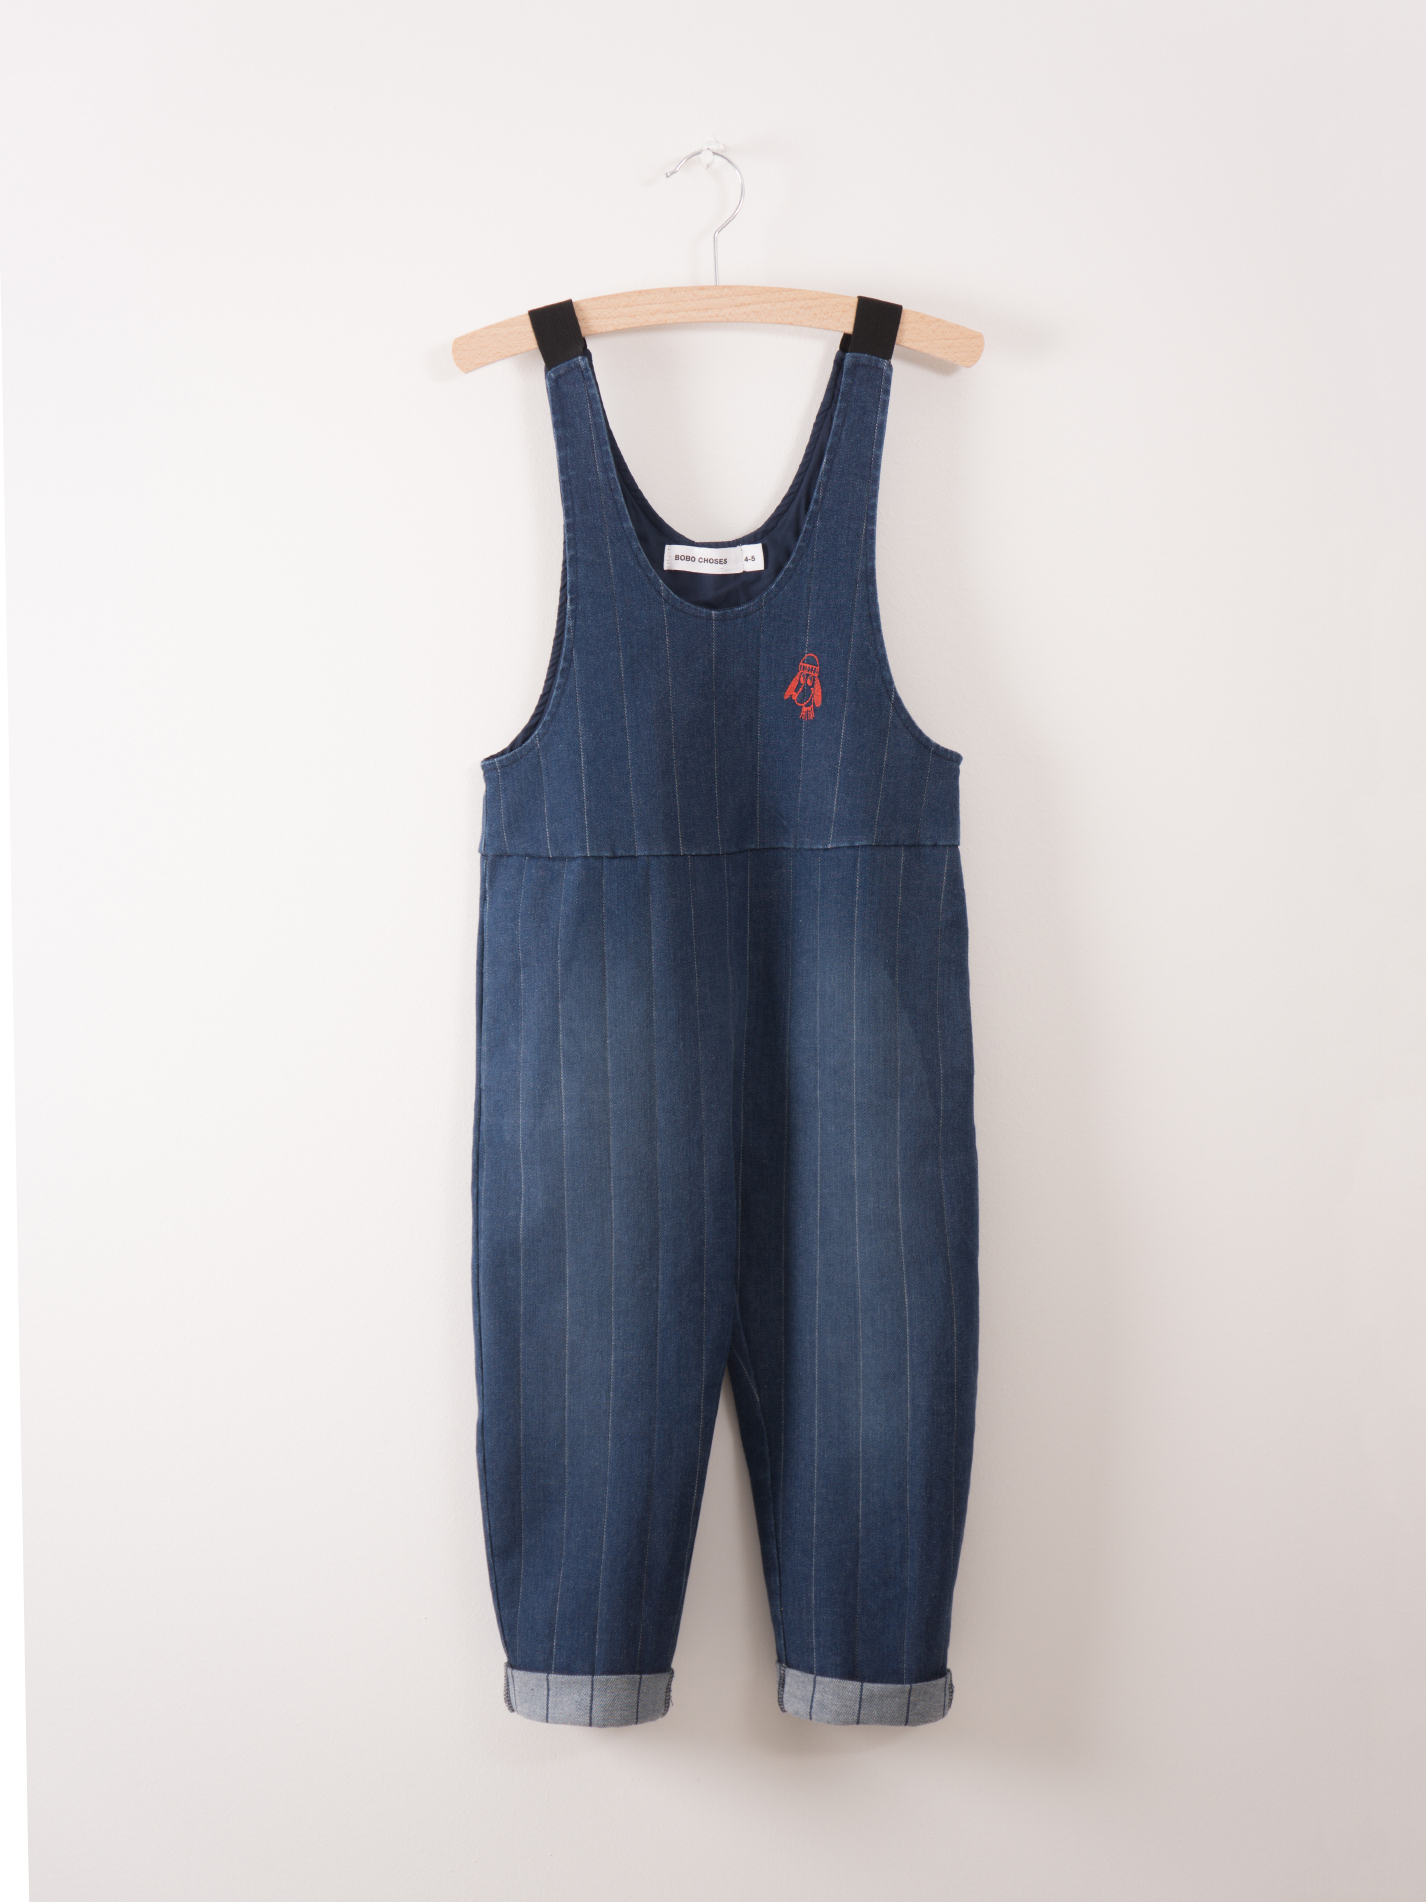 《BOBO CHOSES 2017AW》Denim baggy overall